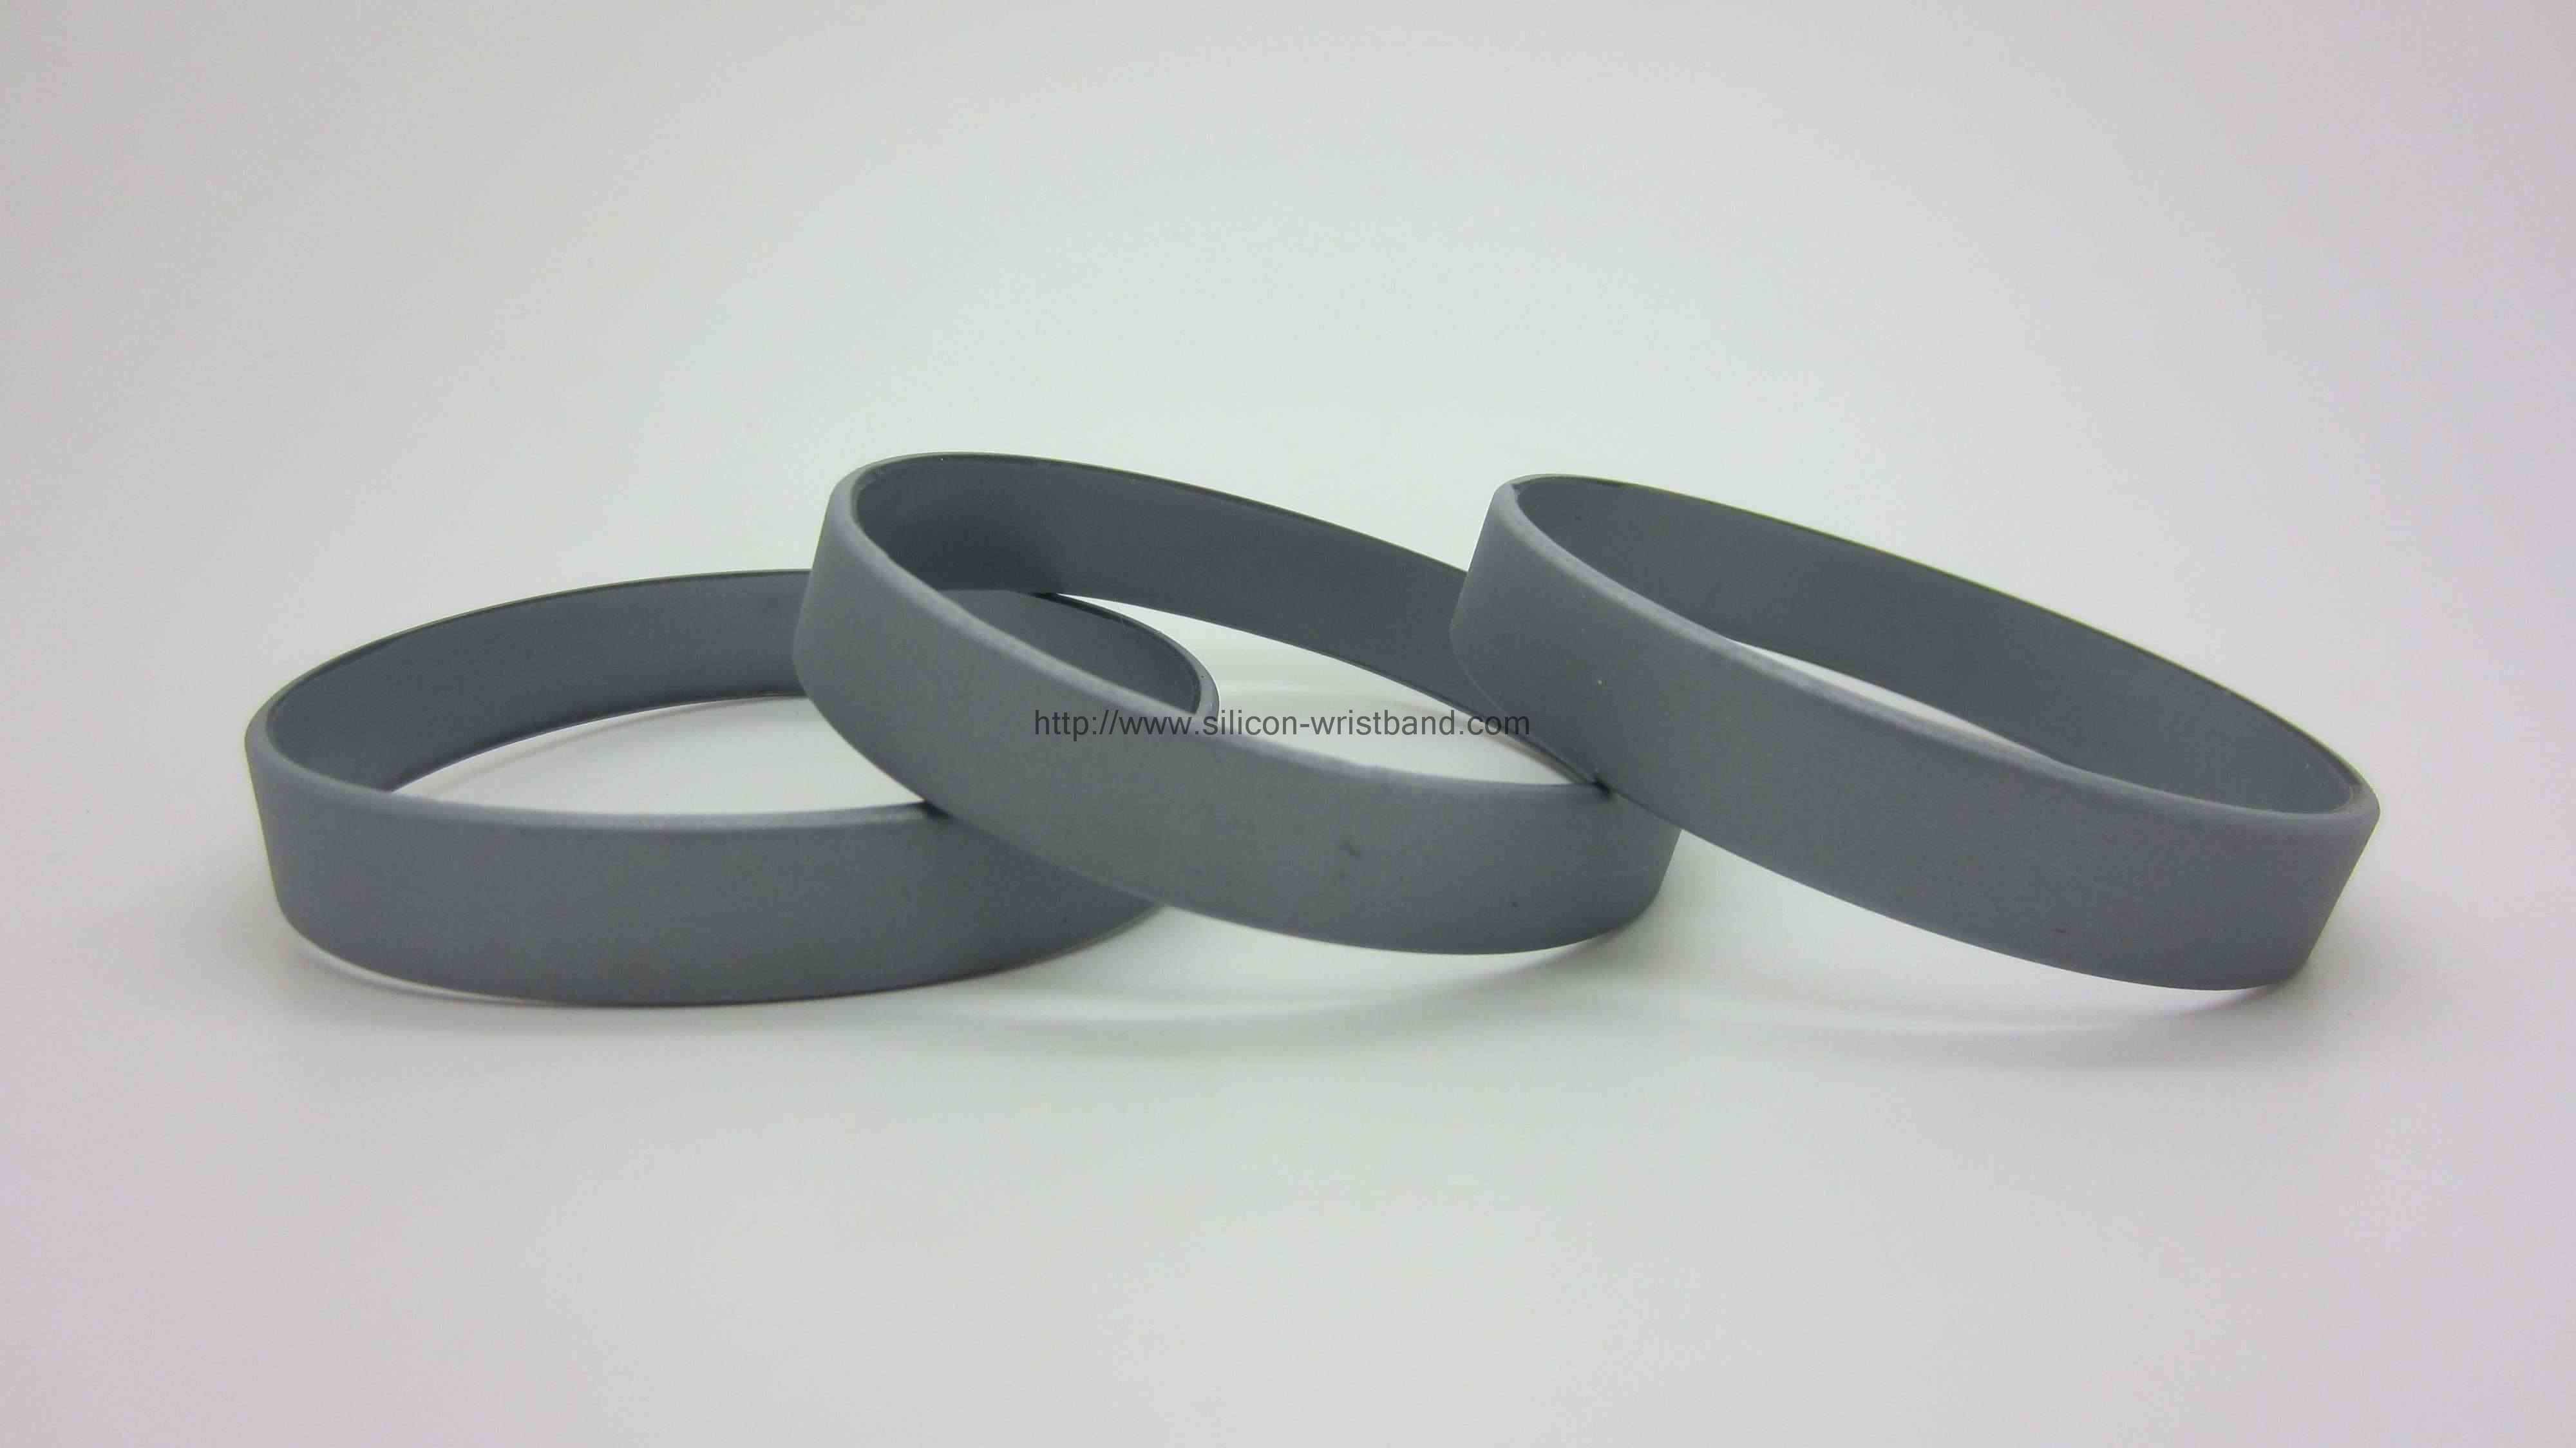 Is not to advertise for silicone wristbands will cost far higher than other website silicone wristbands website?